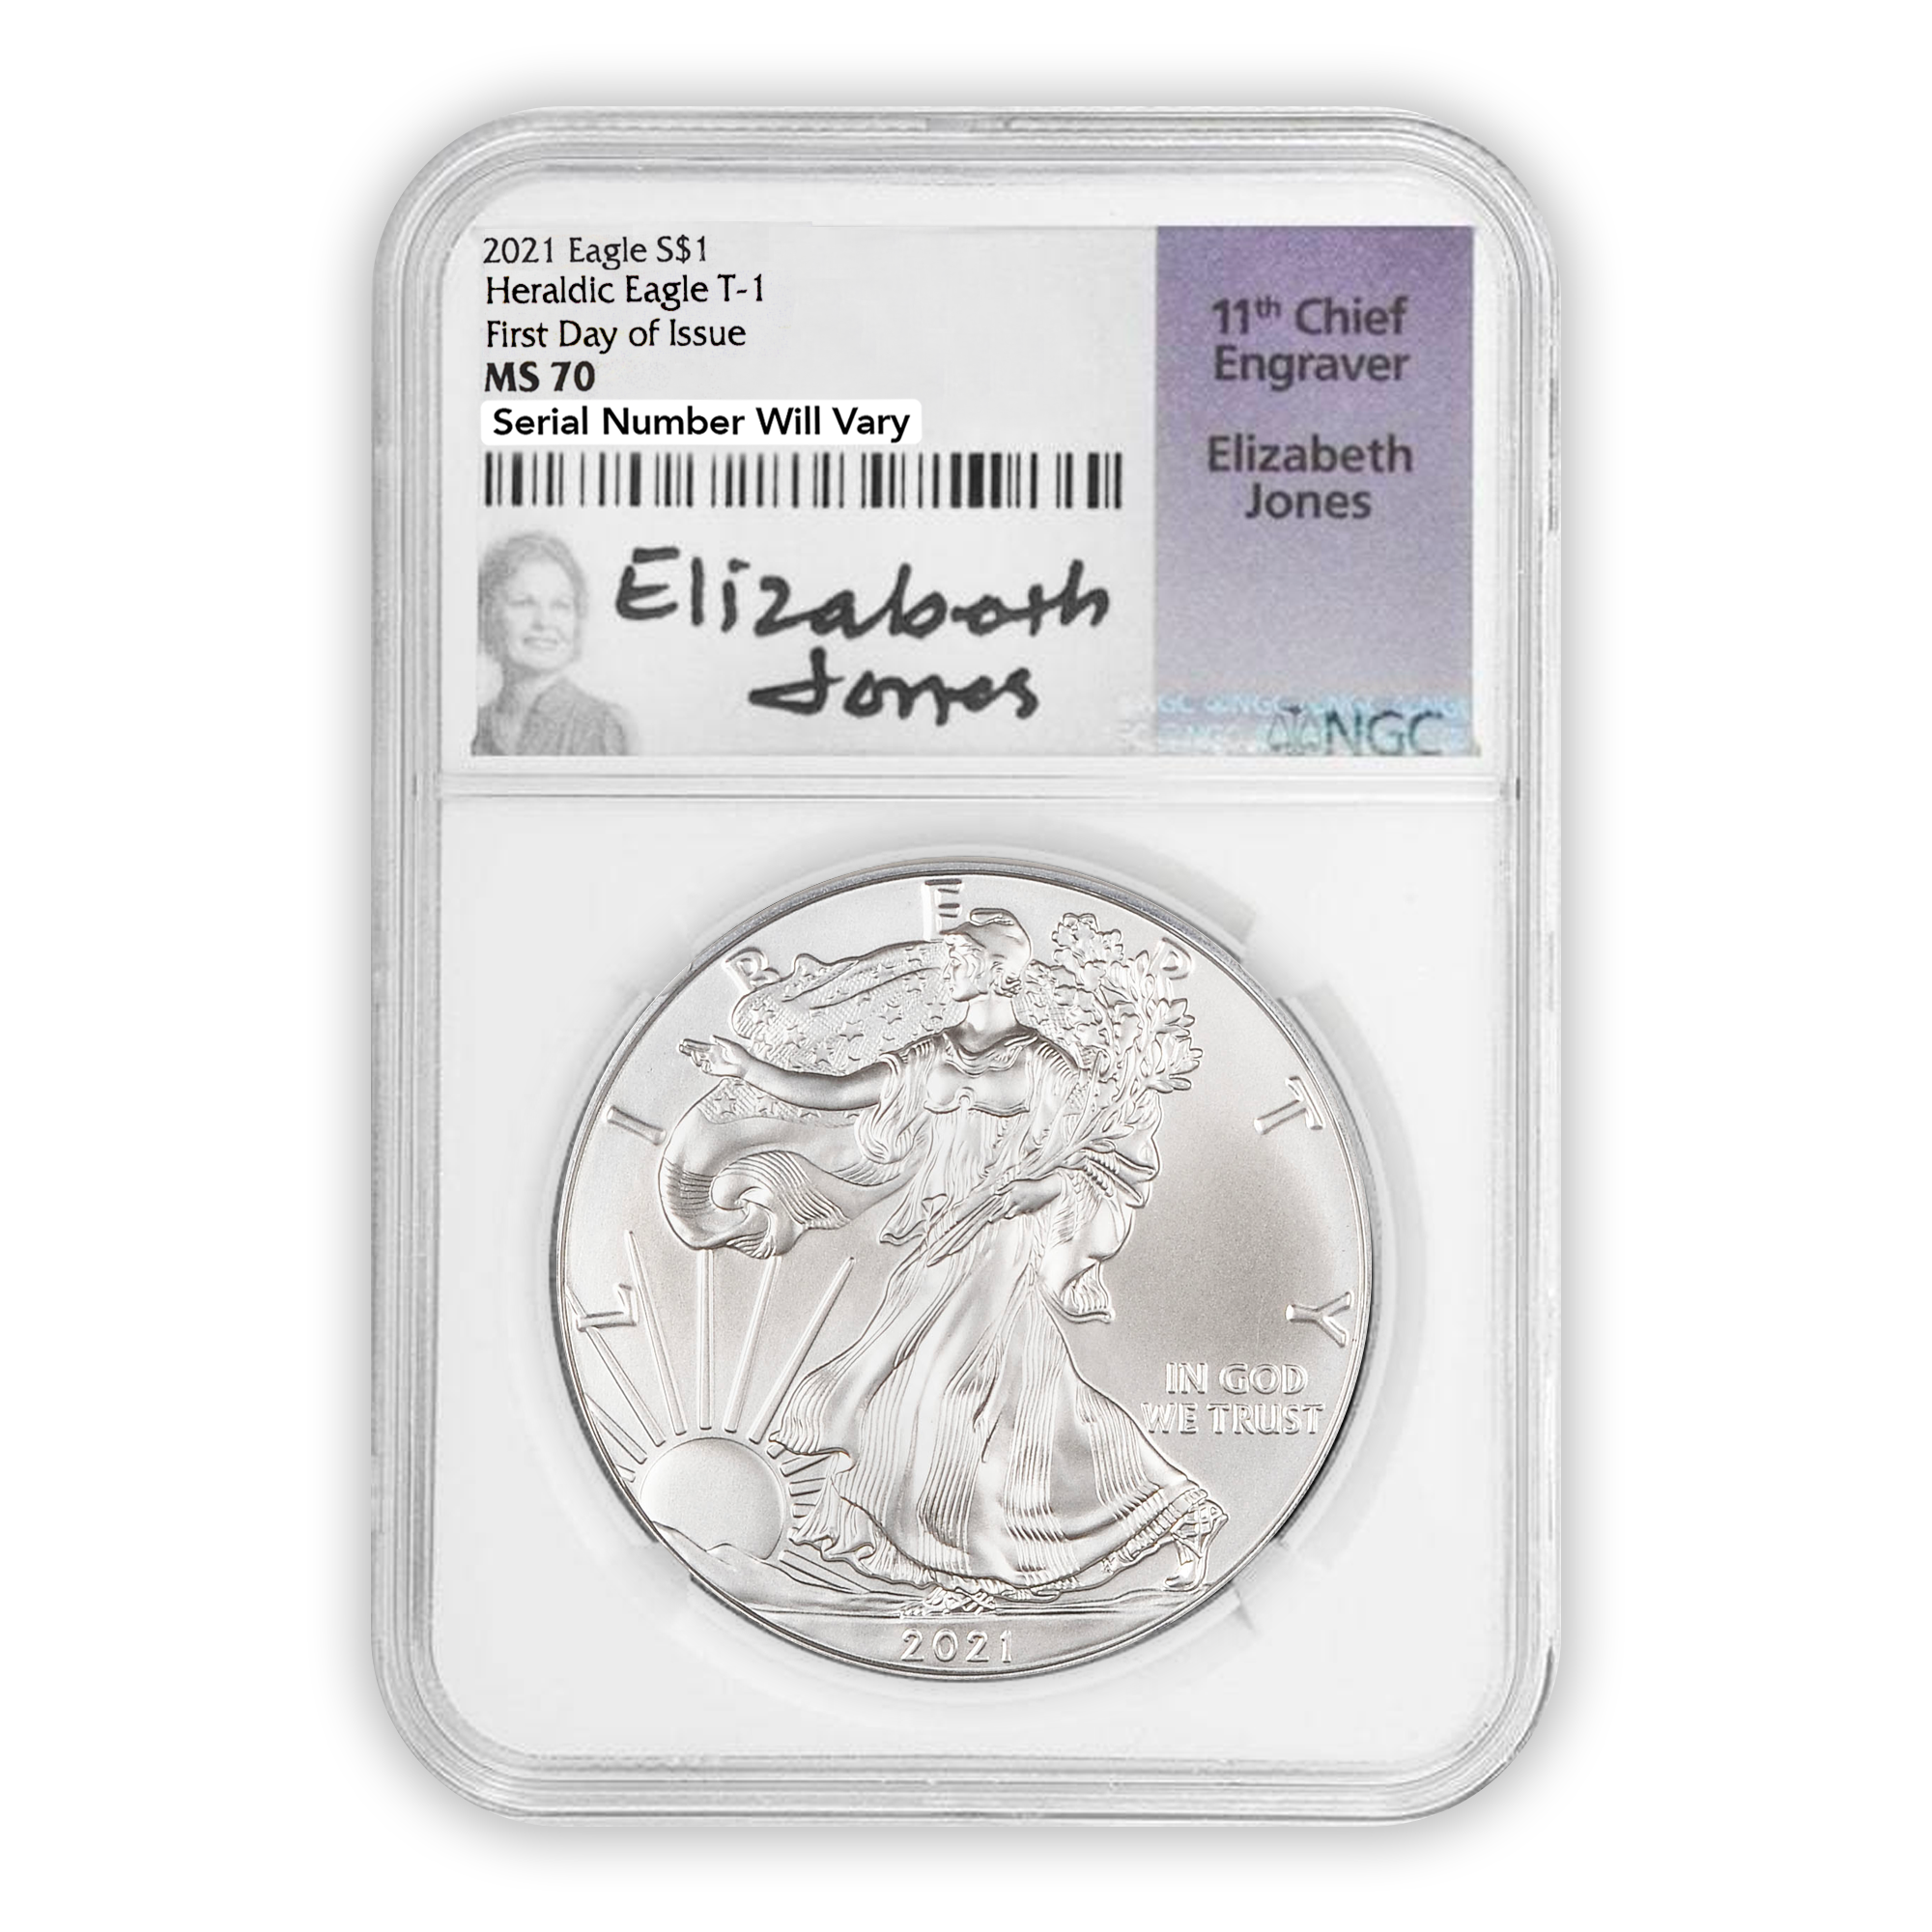 2021 Silver Eagle - Business Strike - Type 1 - NGC MS70 FDOI First Day of Issue Elizabeth Jones Signature Label